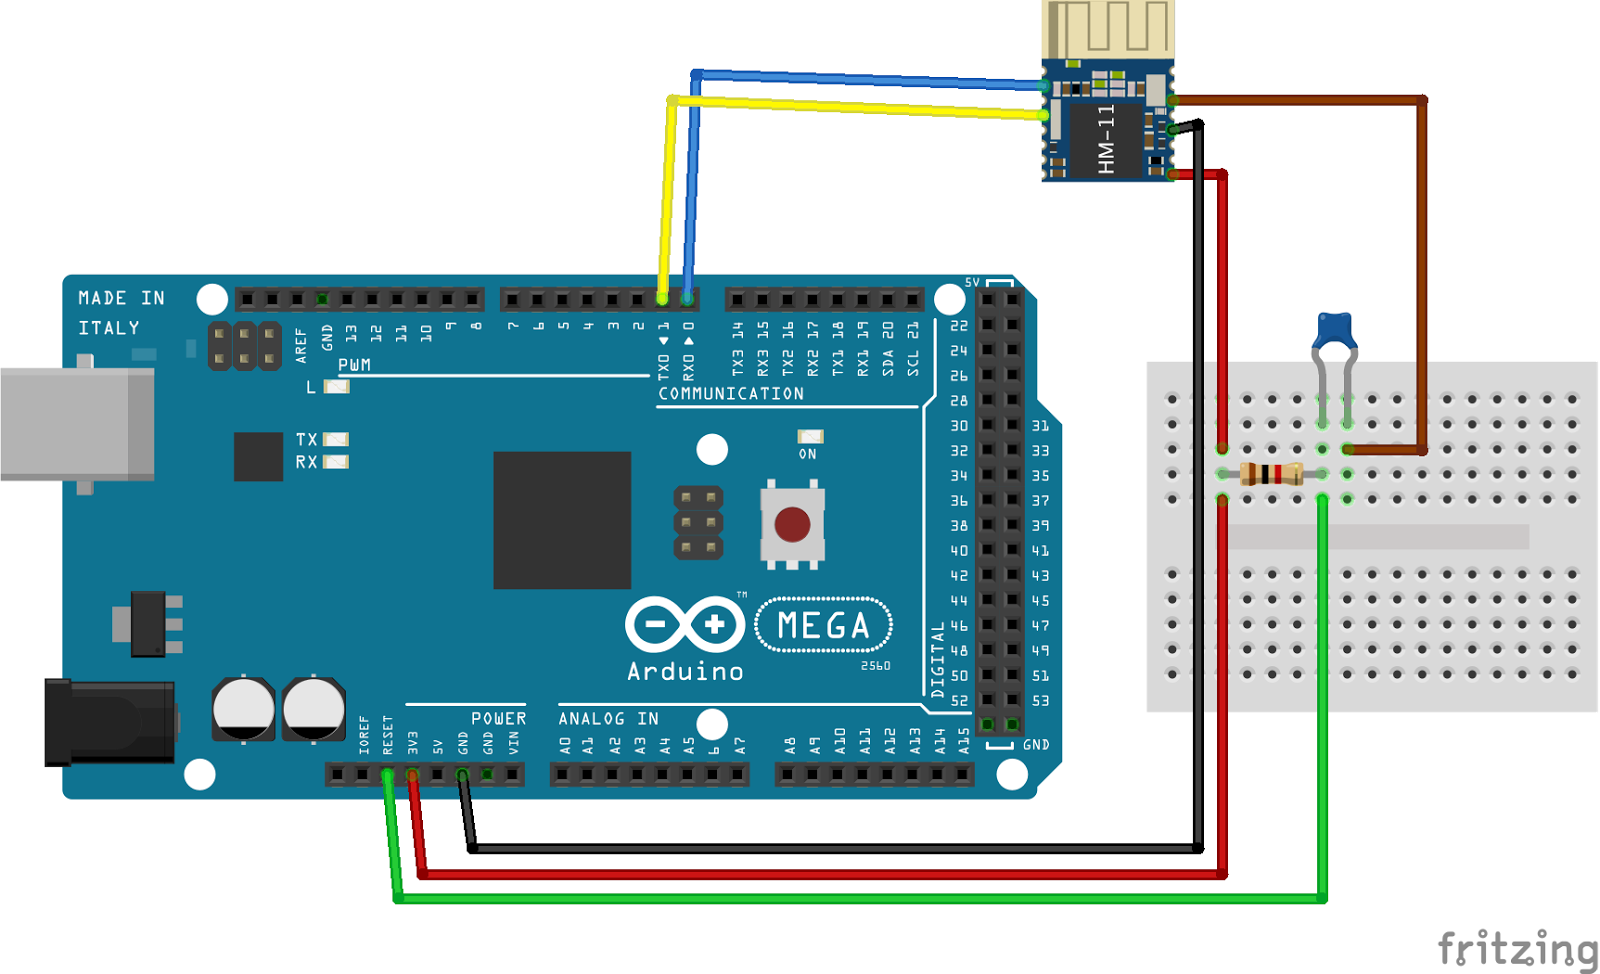 arduino mega wiring diagram arduino gyro wiring diagram apploader upload arduino sketches over ble from ipad iphone